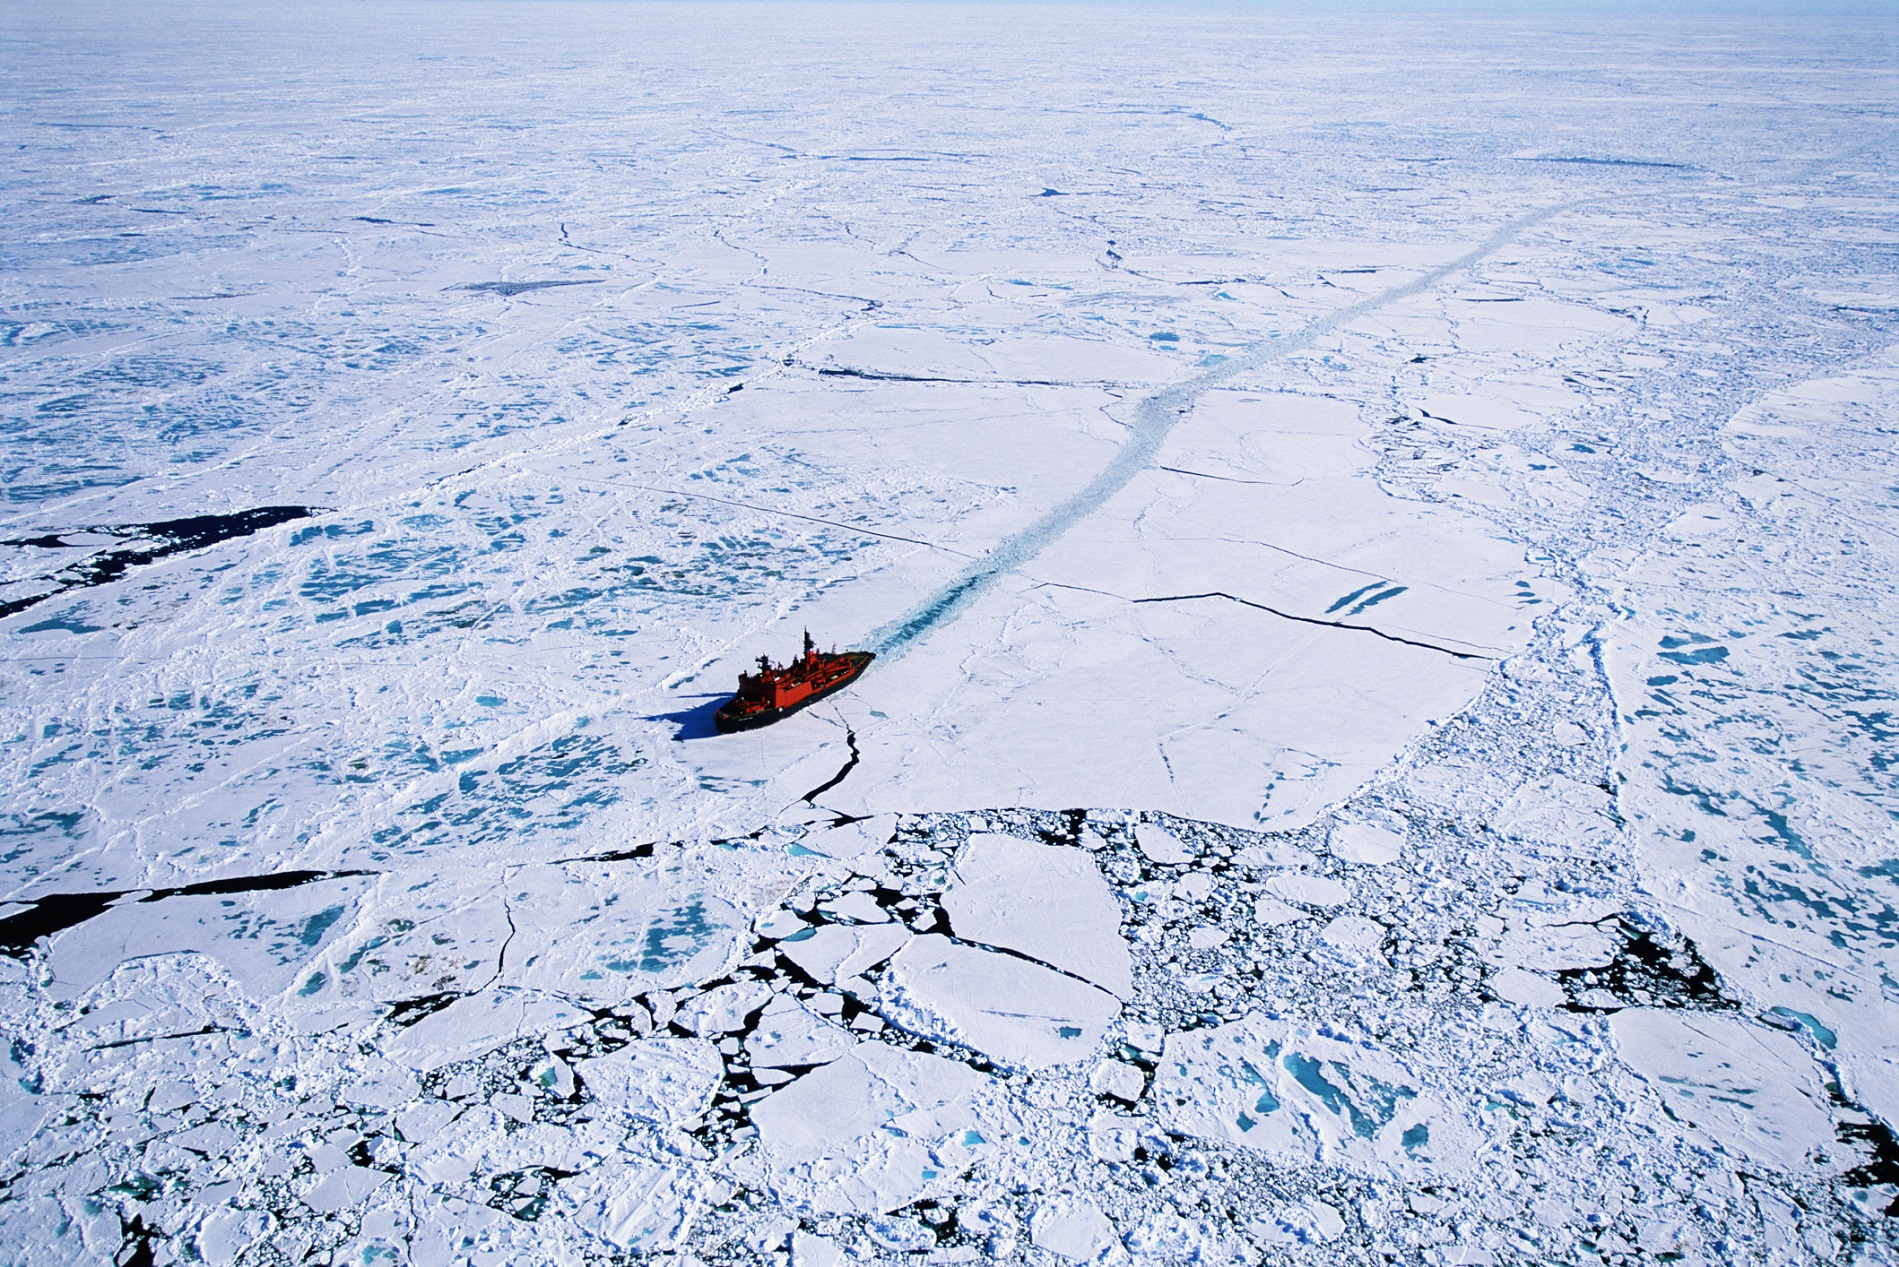 Russian nuclear icebreaker clearing a path to North Pole, aerial view.